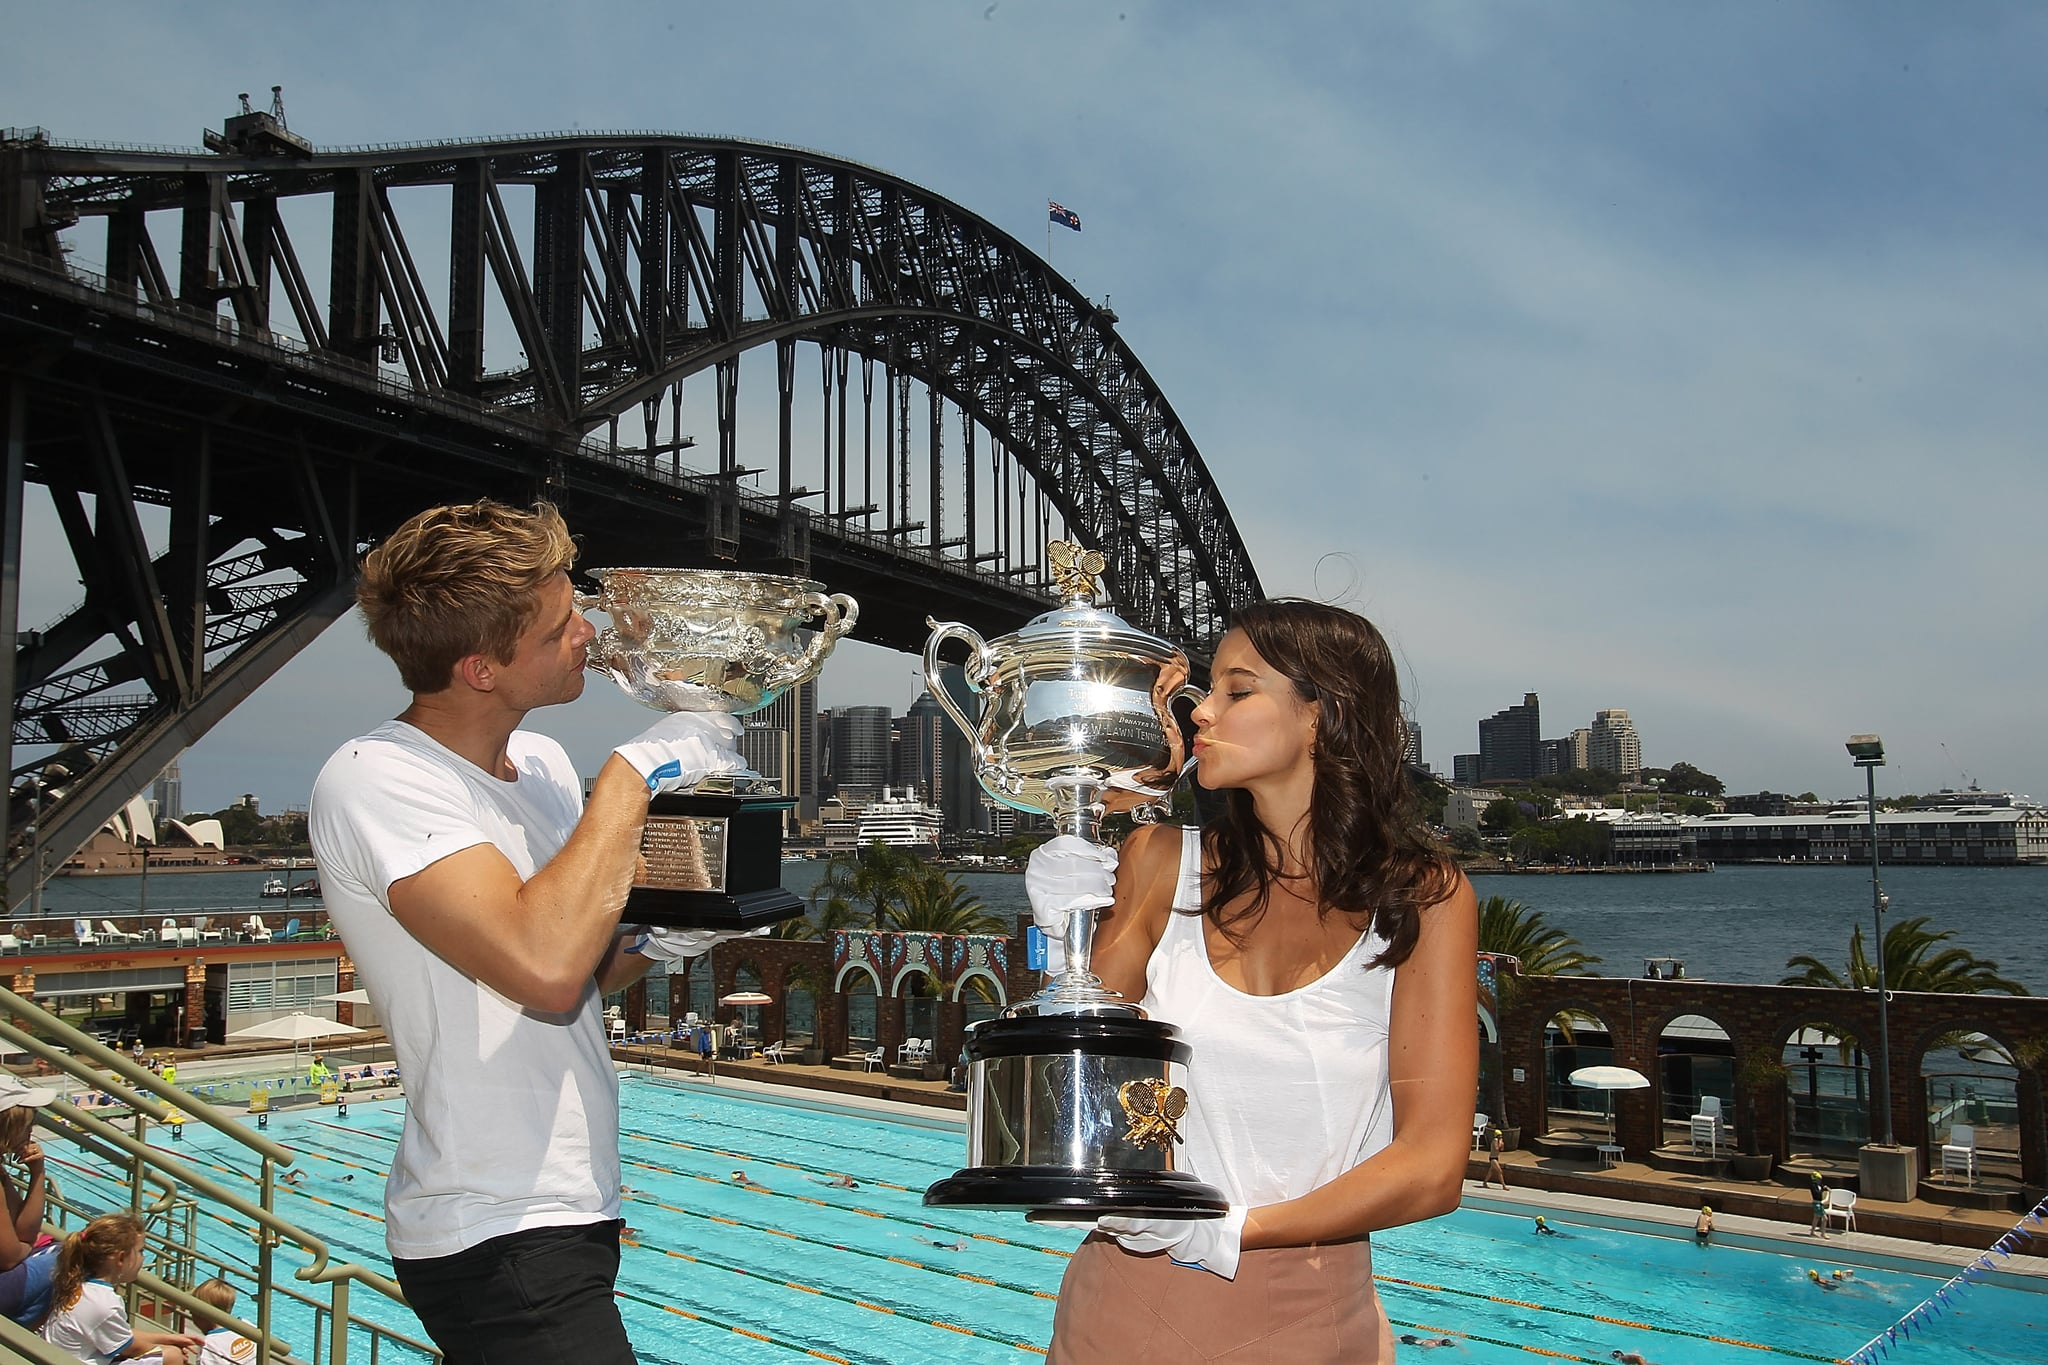 Luke Mitchell and Rhiannon Fish